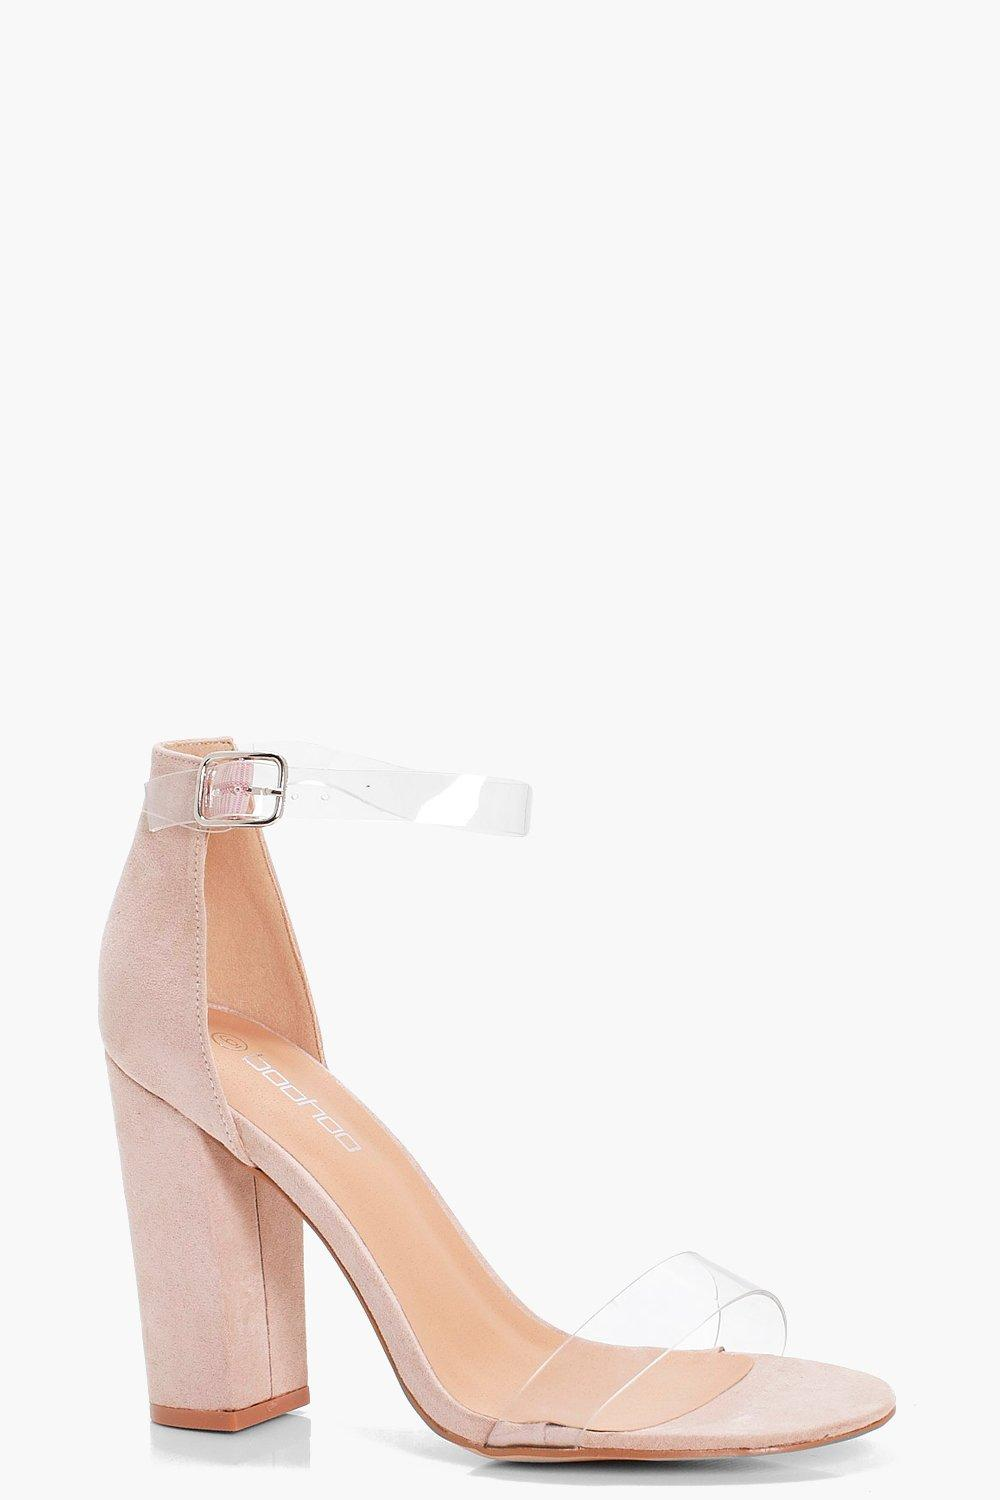 Wide Fit Clear Band Block Heels | boohoo Australia